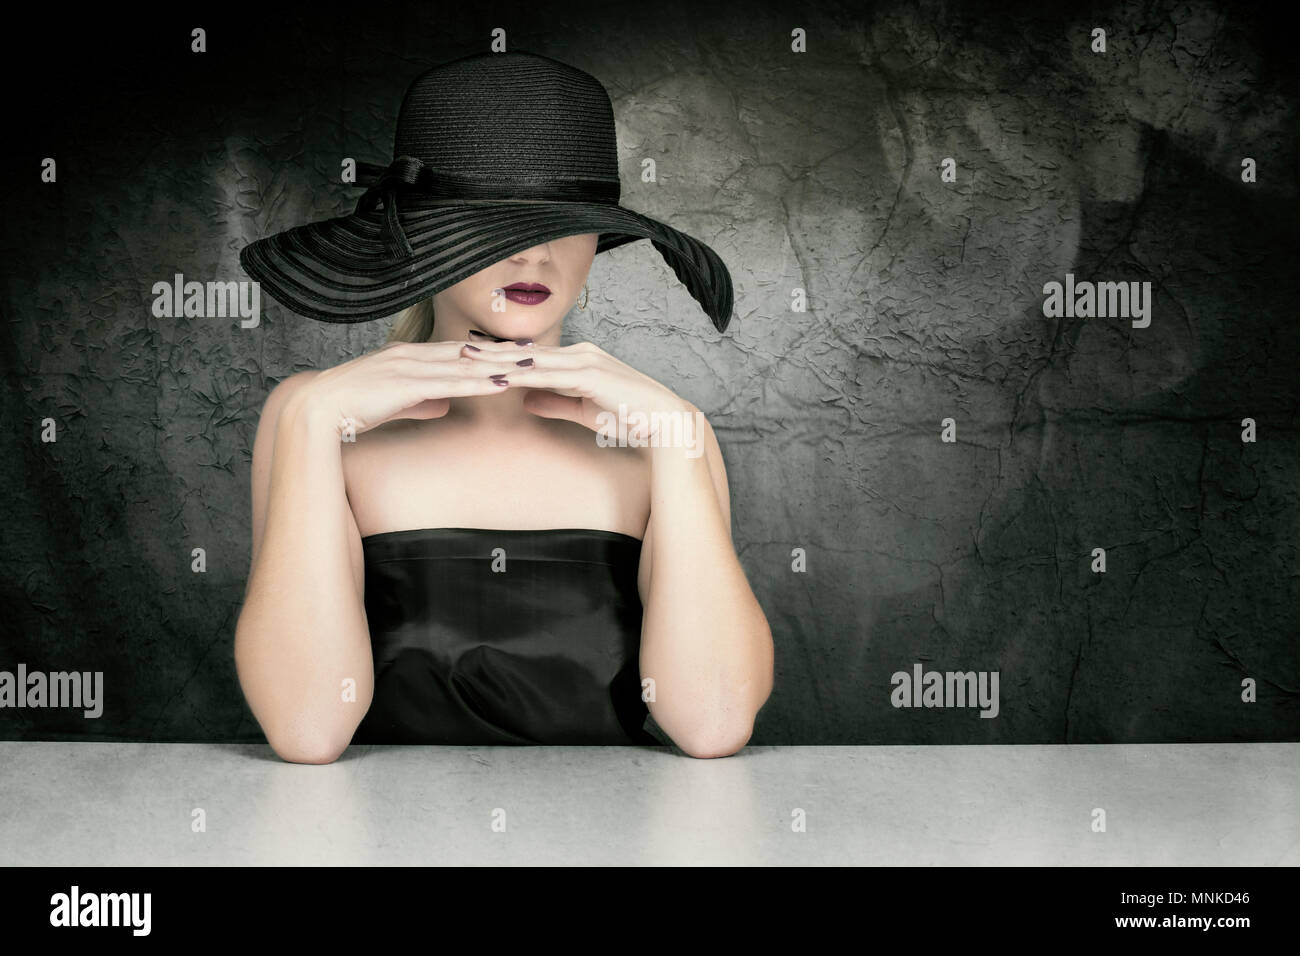 Woman with hat. - Stock Image